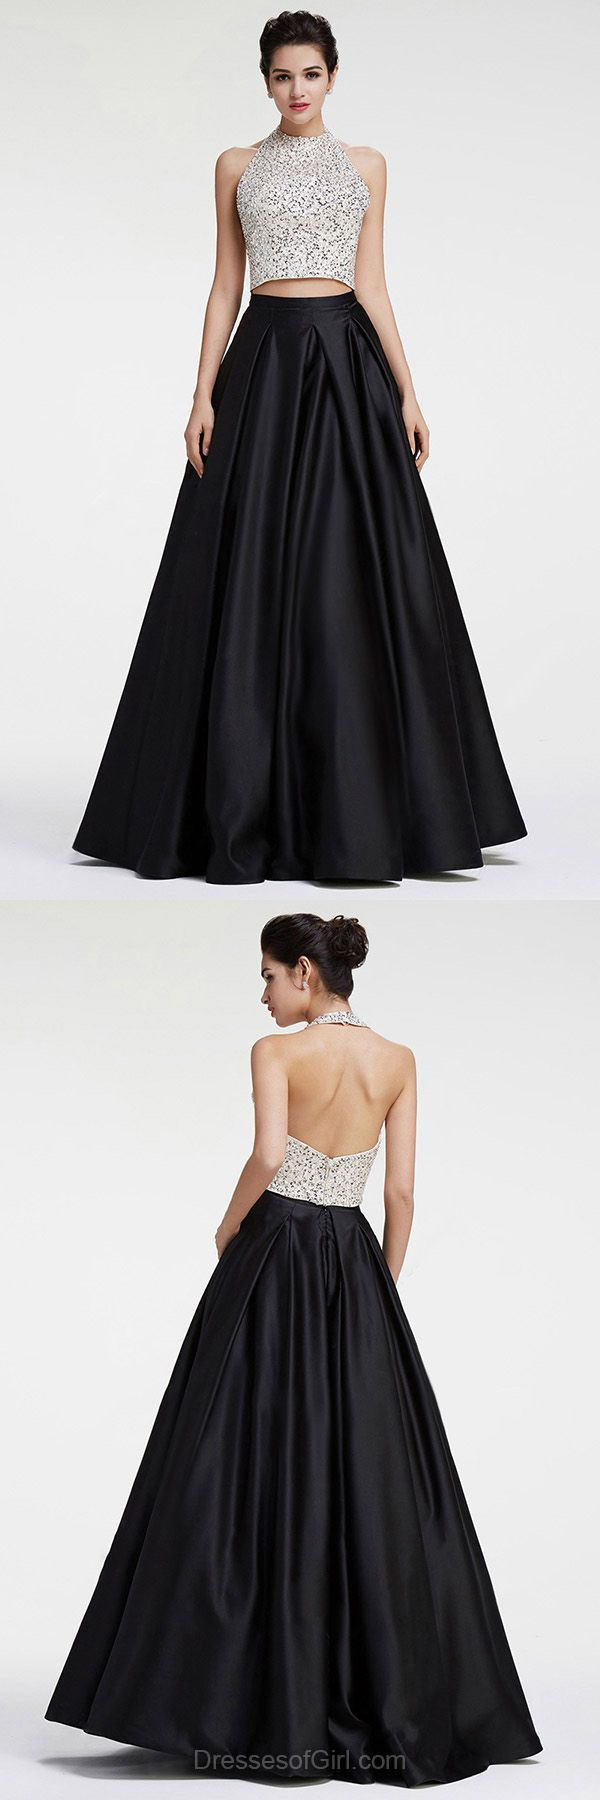 High Neck Prom Dress, Black Prom Dresses, Halter Evening Dresses, Satin Party Dresses, Two Piece Formal Dresses